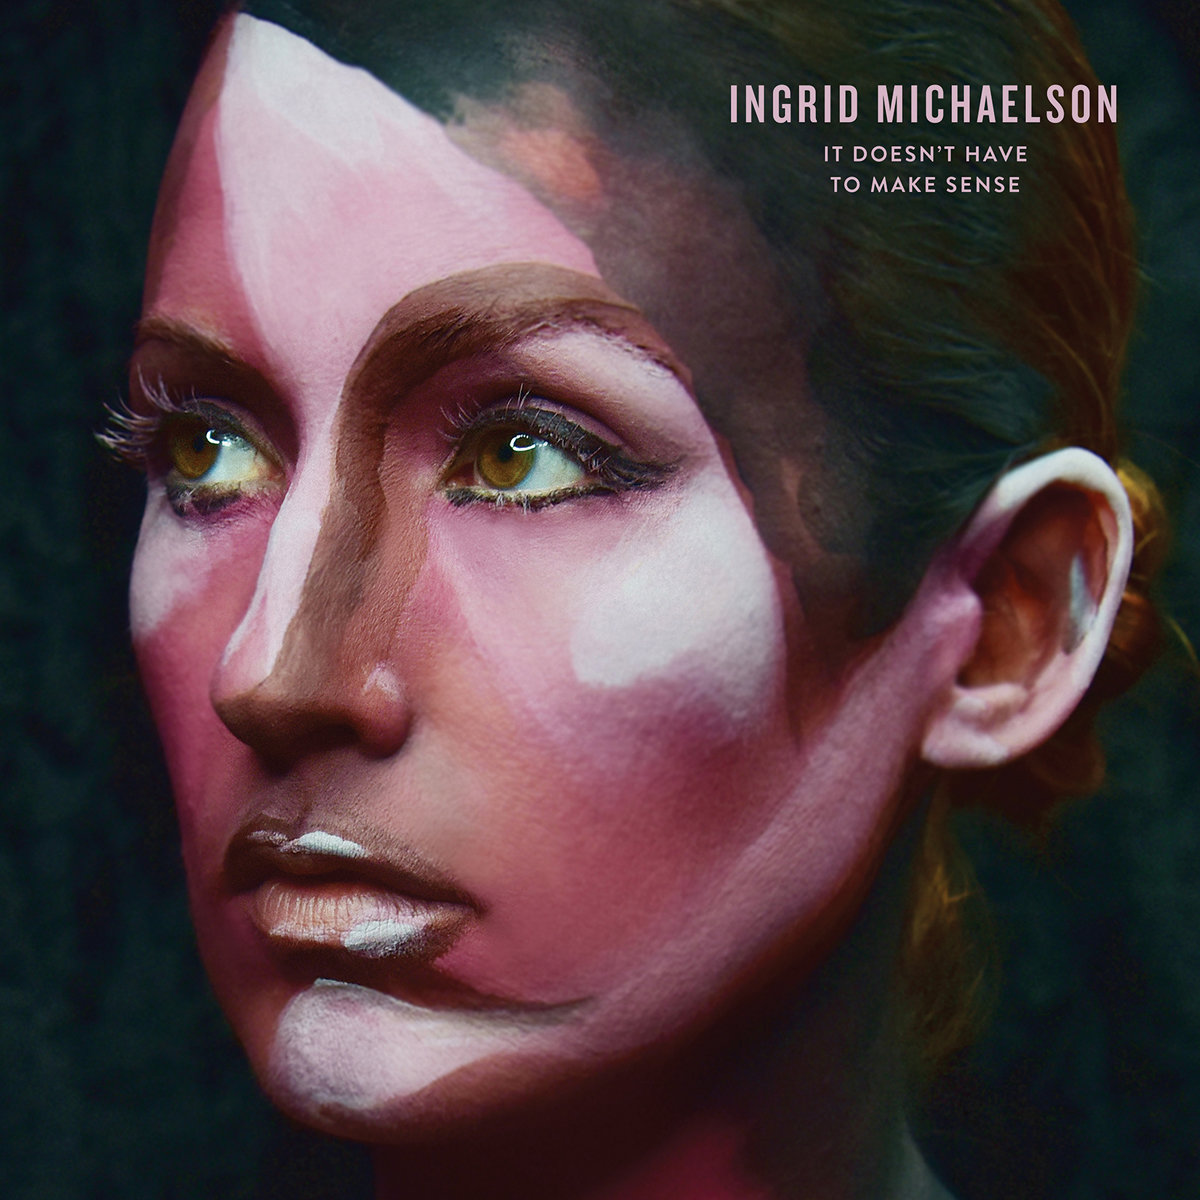 Ingrid Michaelson Album - Embed